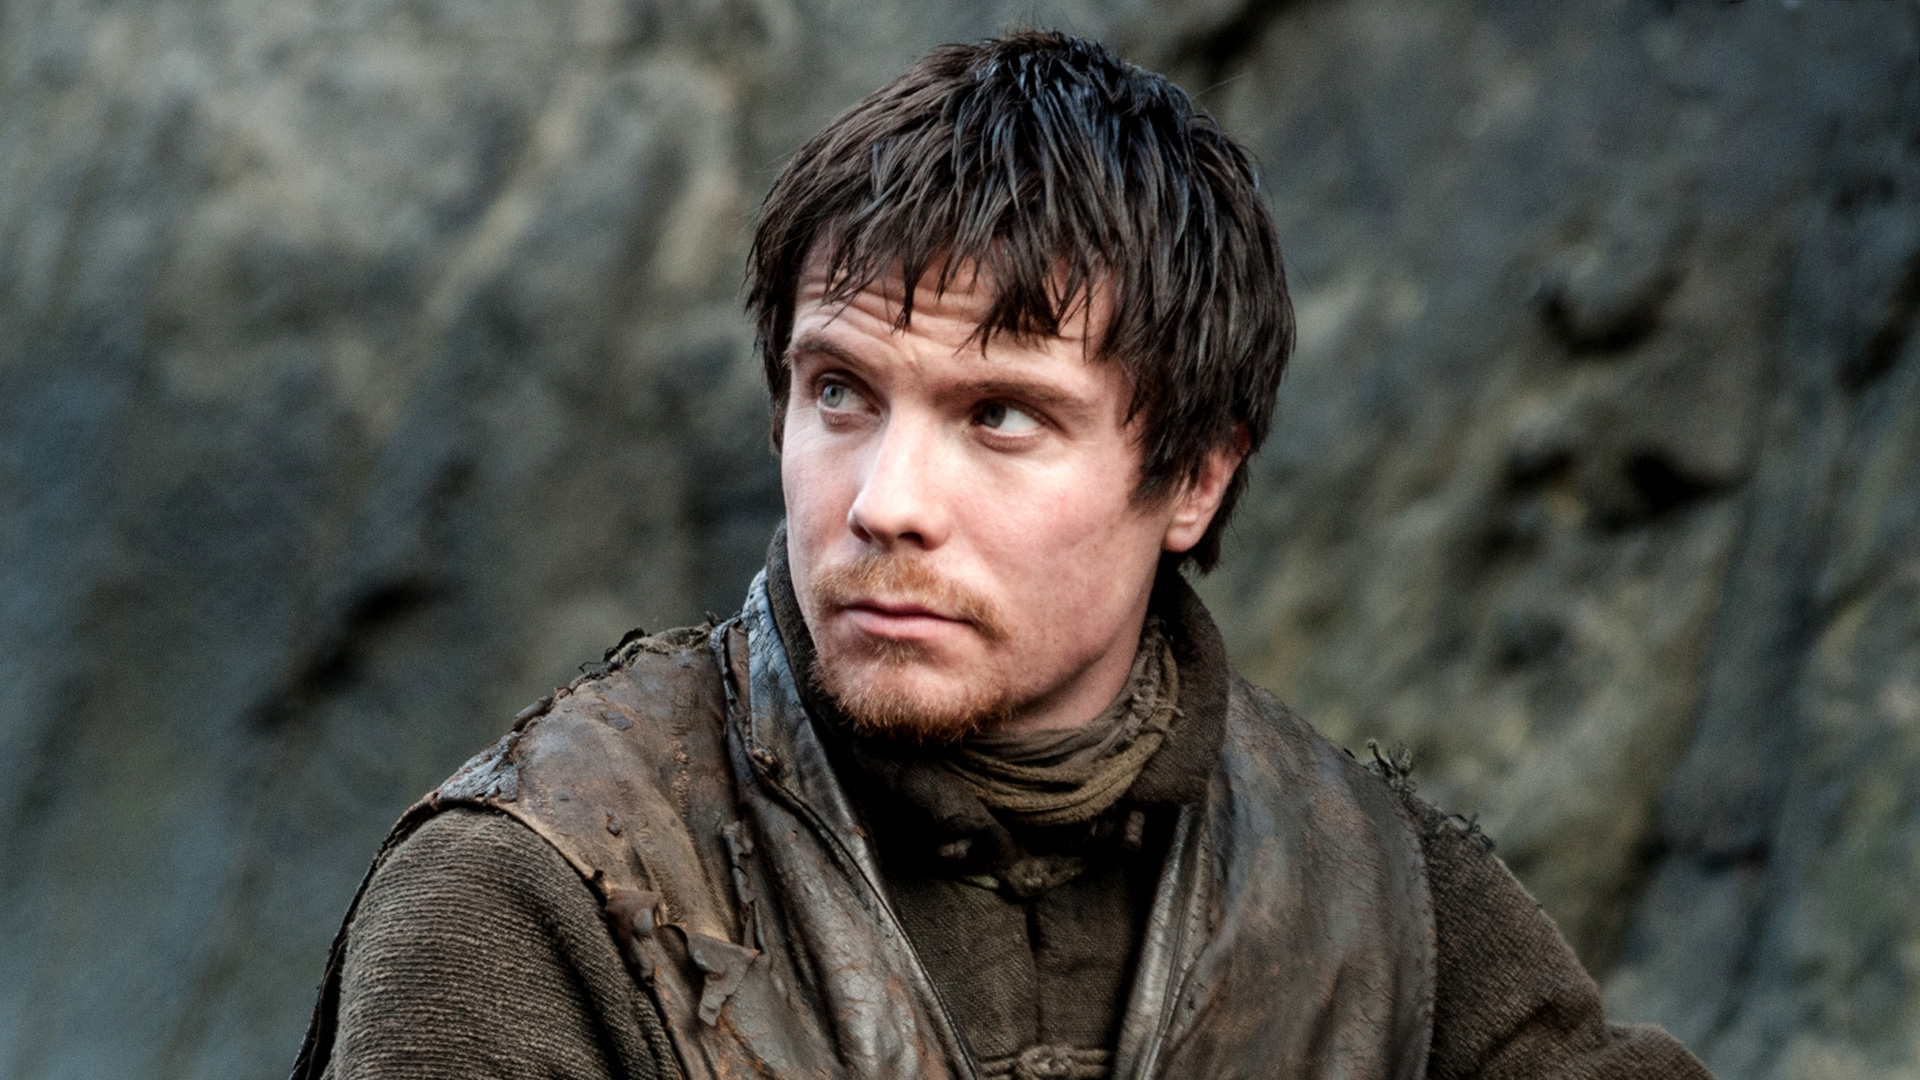 Faceless Men: Book Characters We Wish We Could See in Game of Thrones